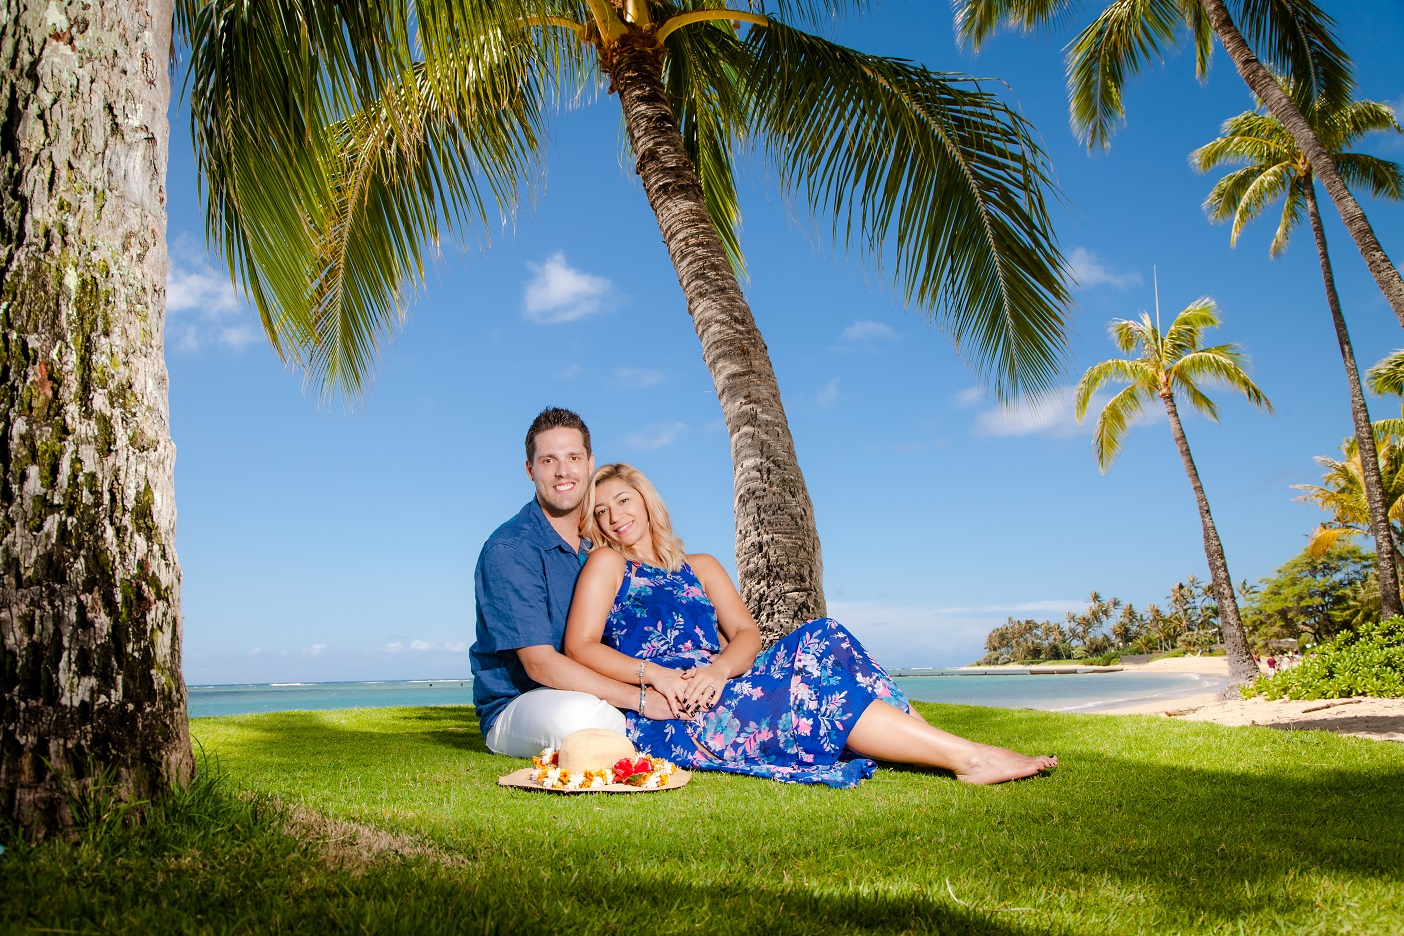 hawaii couples proposal engagement photo shoot